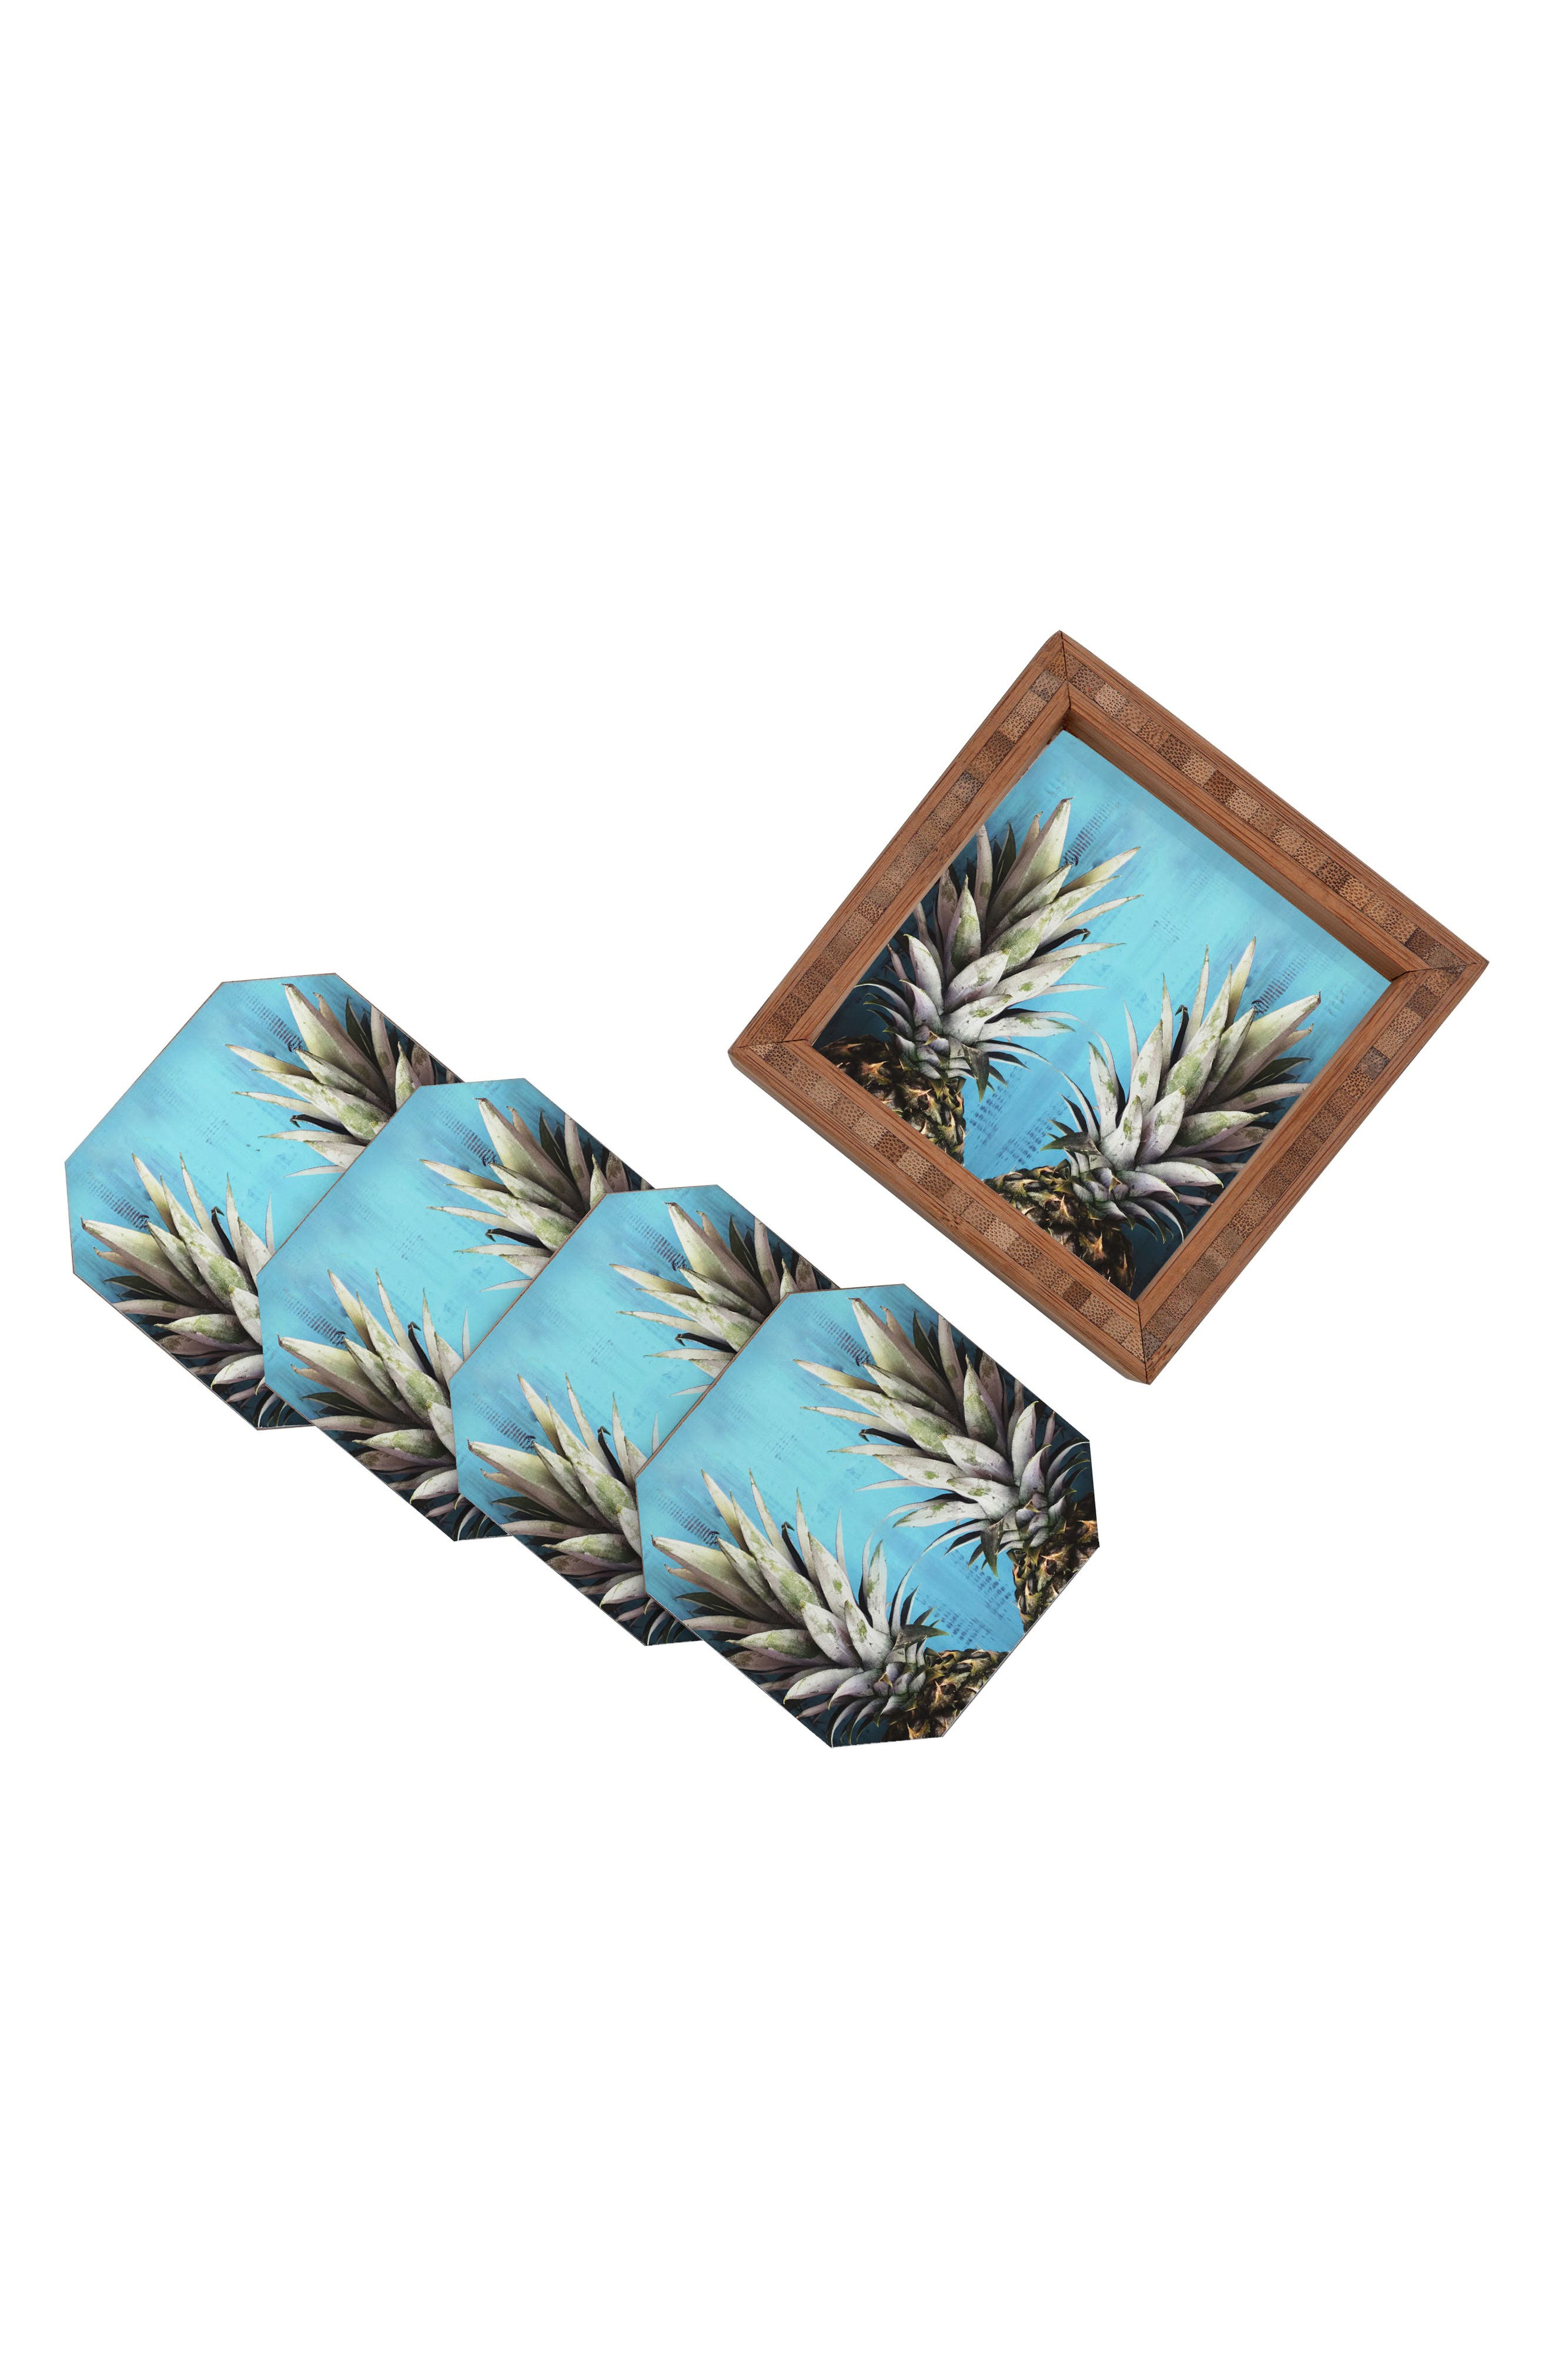 How About Them Pineapples Coaster Set of 4 Coasters,                         Main,                         color,